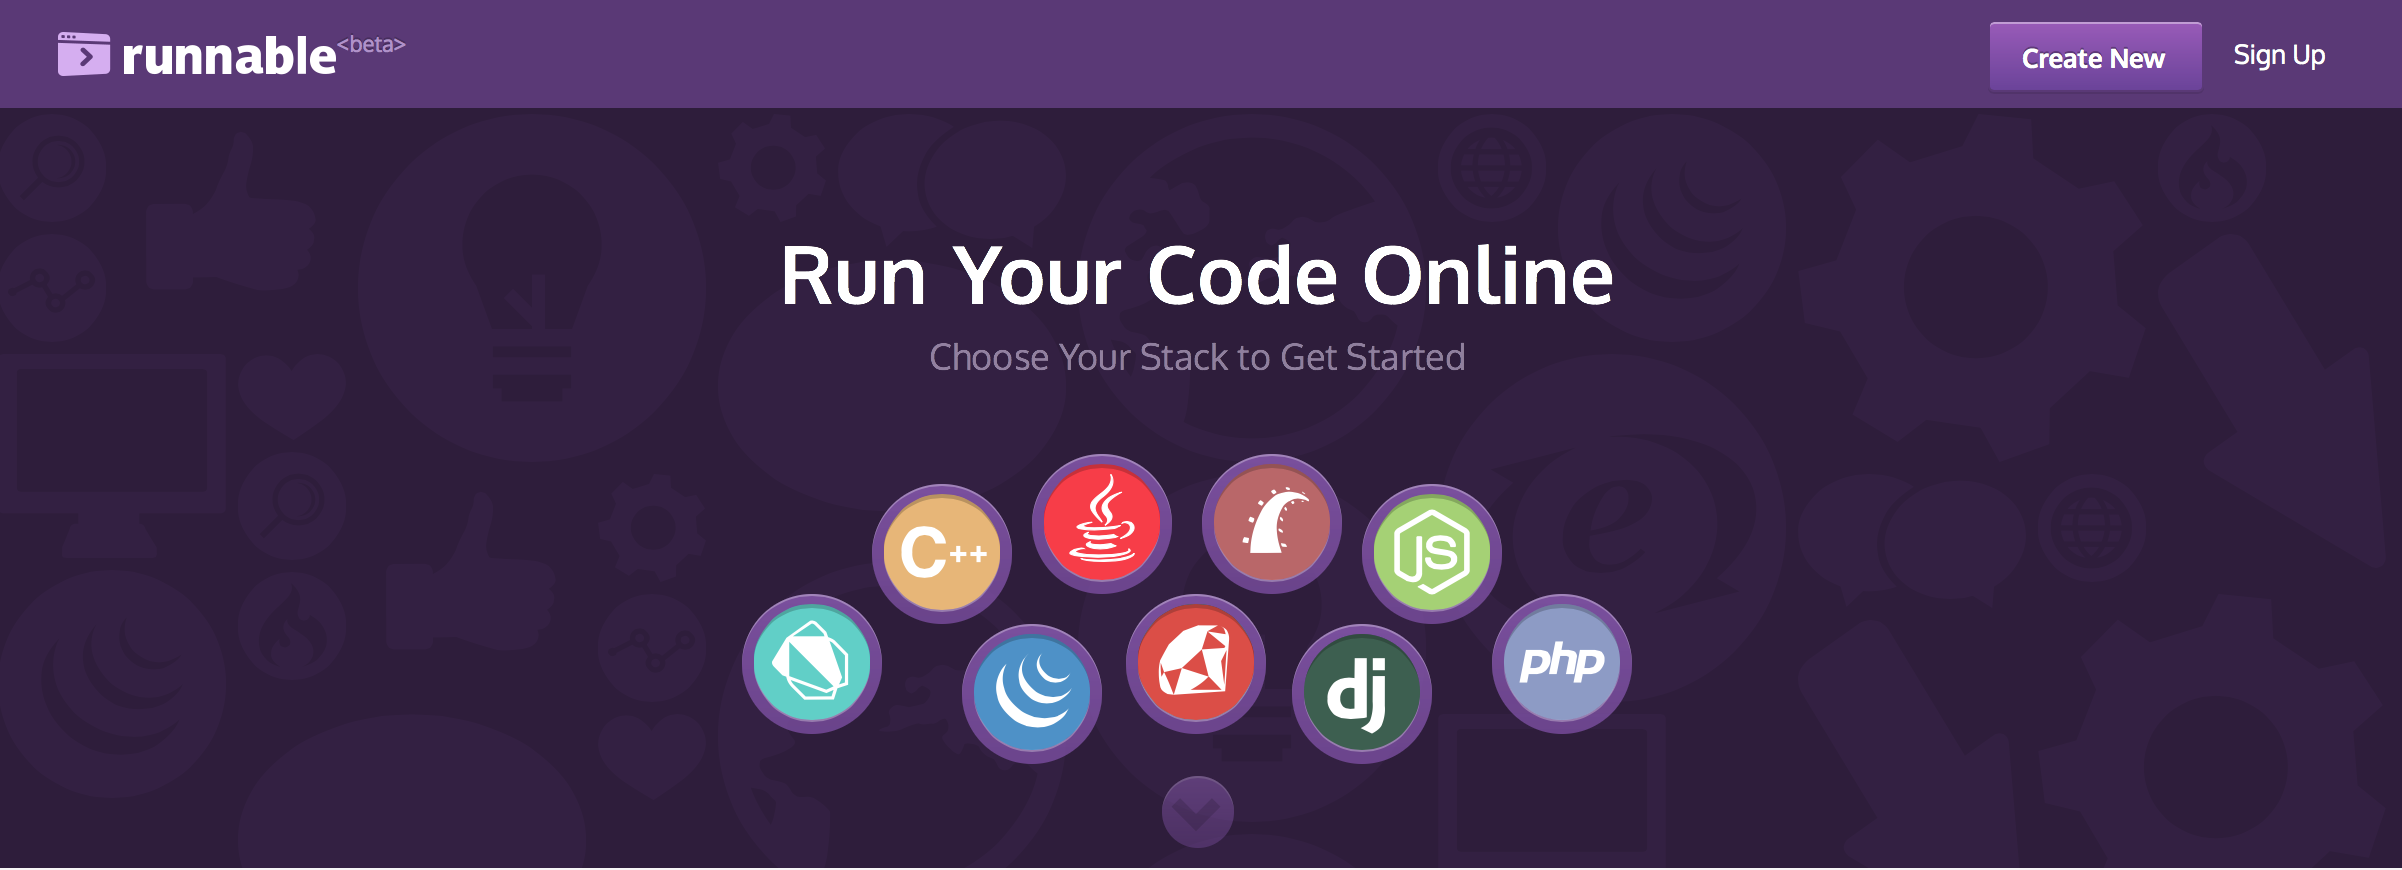 Runnable - Run and test Node js, PHP, Java etc Demo Code